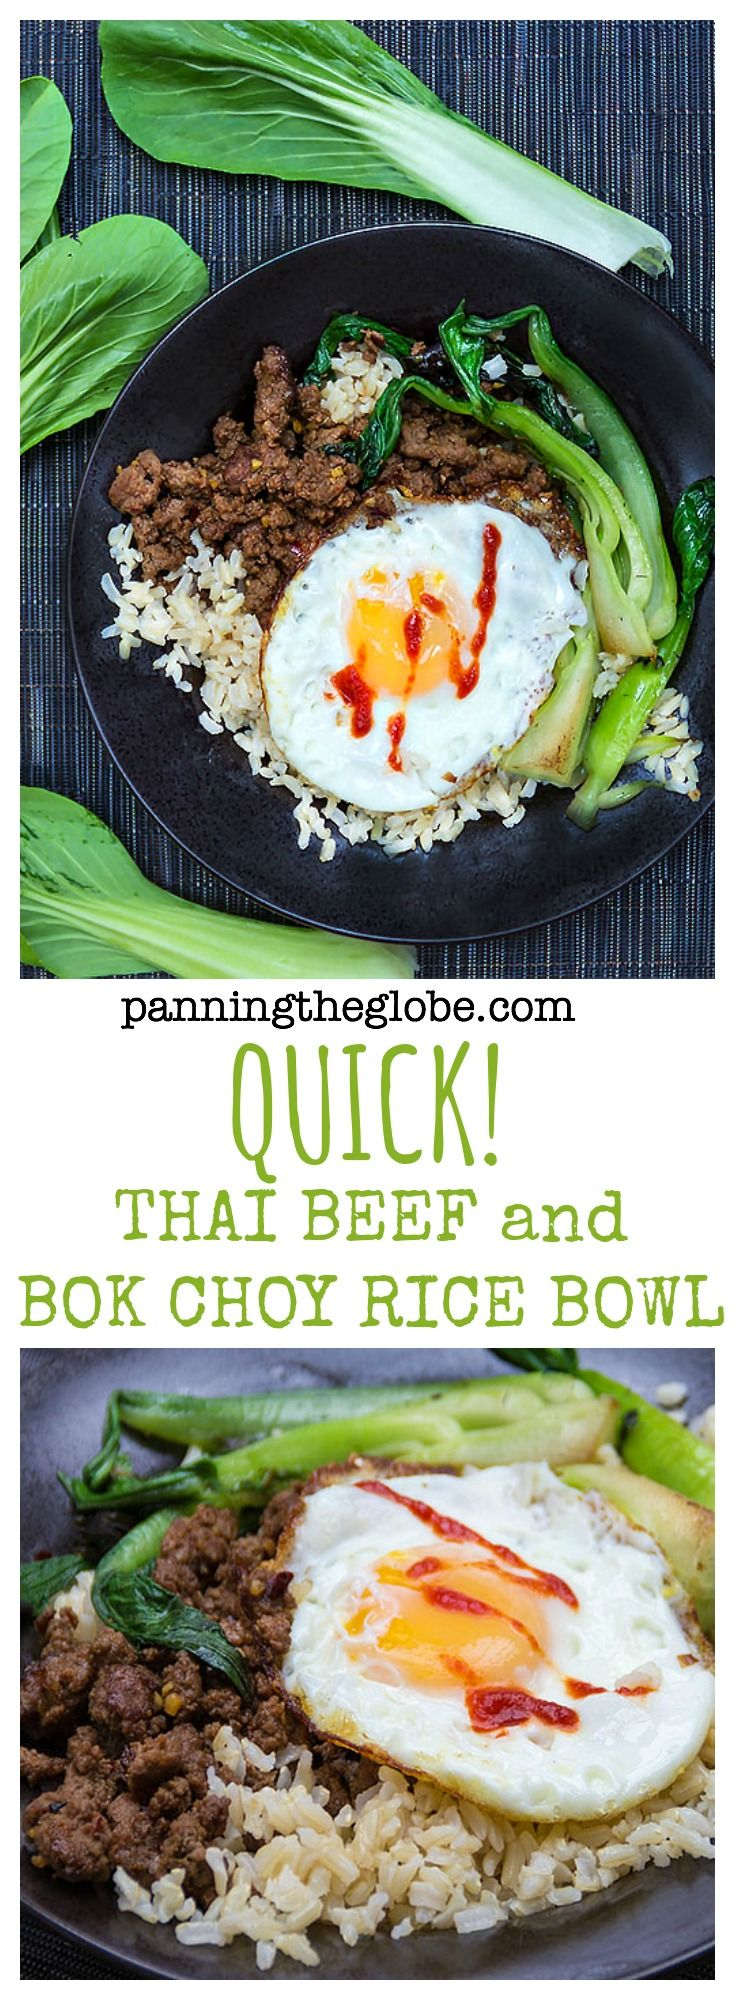 Quick Thai Beef Bok Choy Rice Bowl: the most delicious dish you can make in 20 minutes!